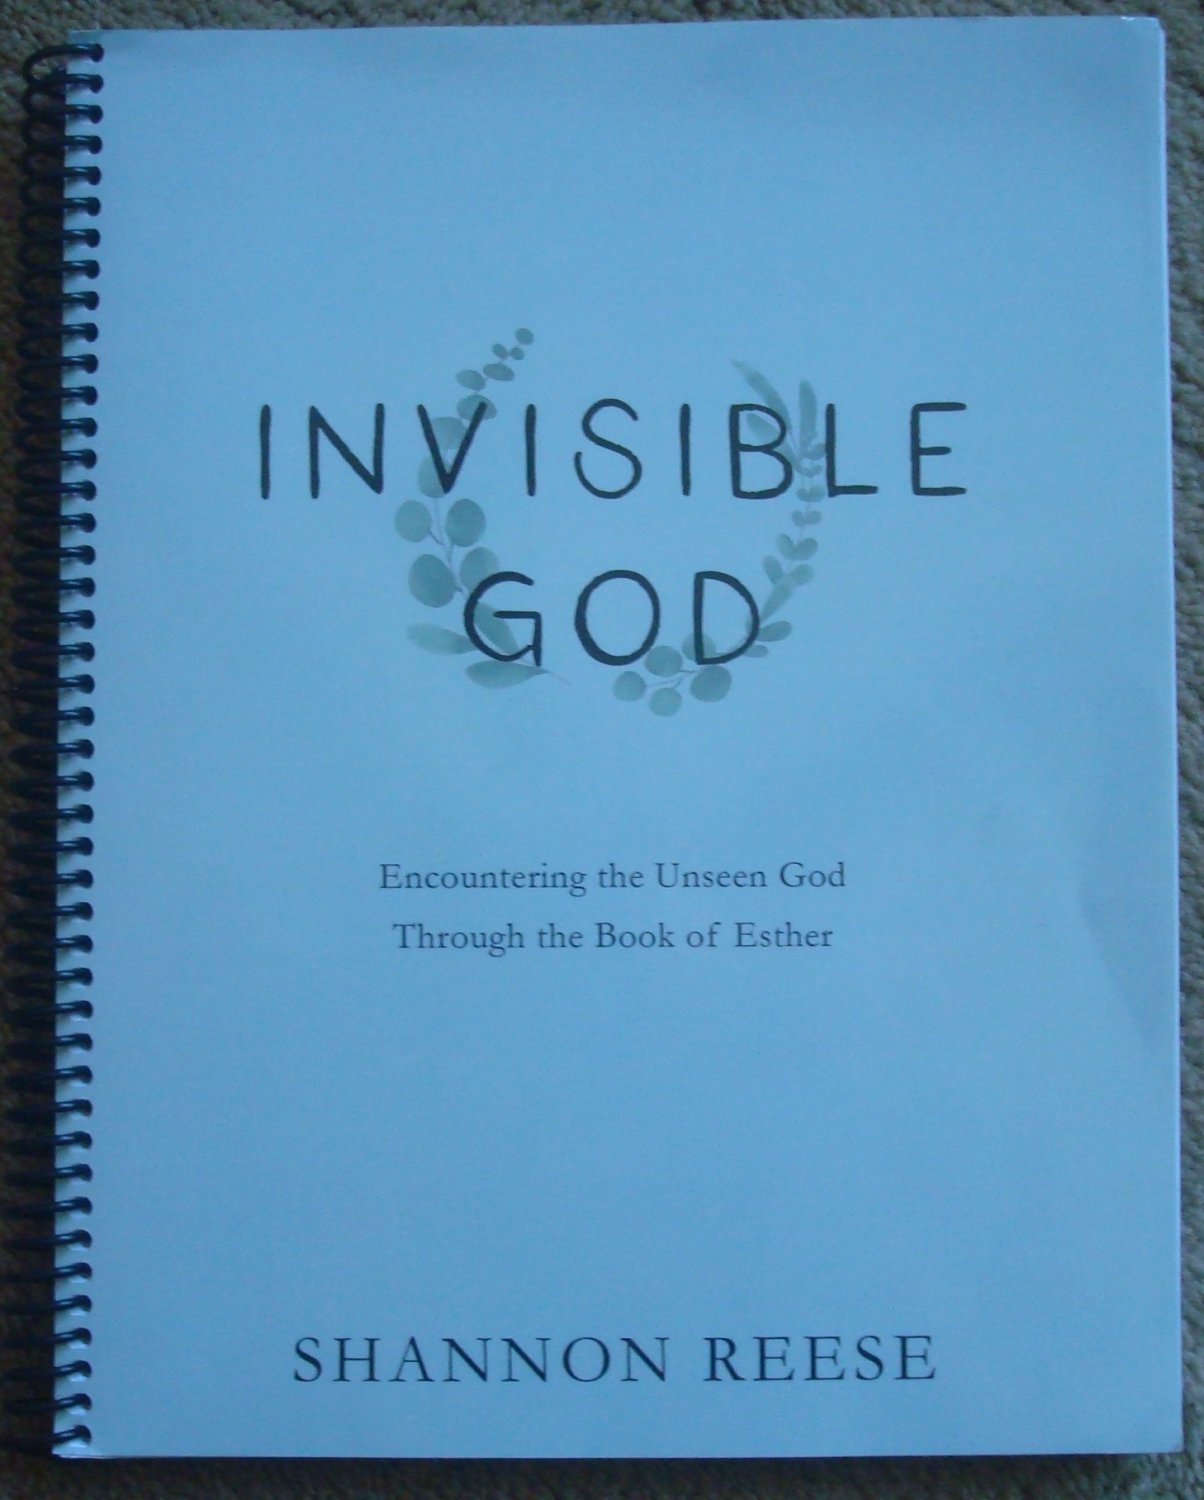 Invisible God: Encountering the Unseen God Through the Book of Esther